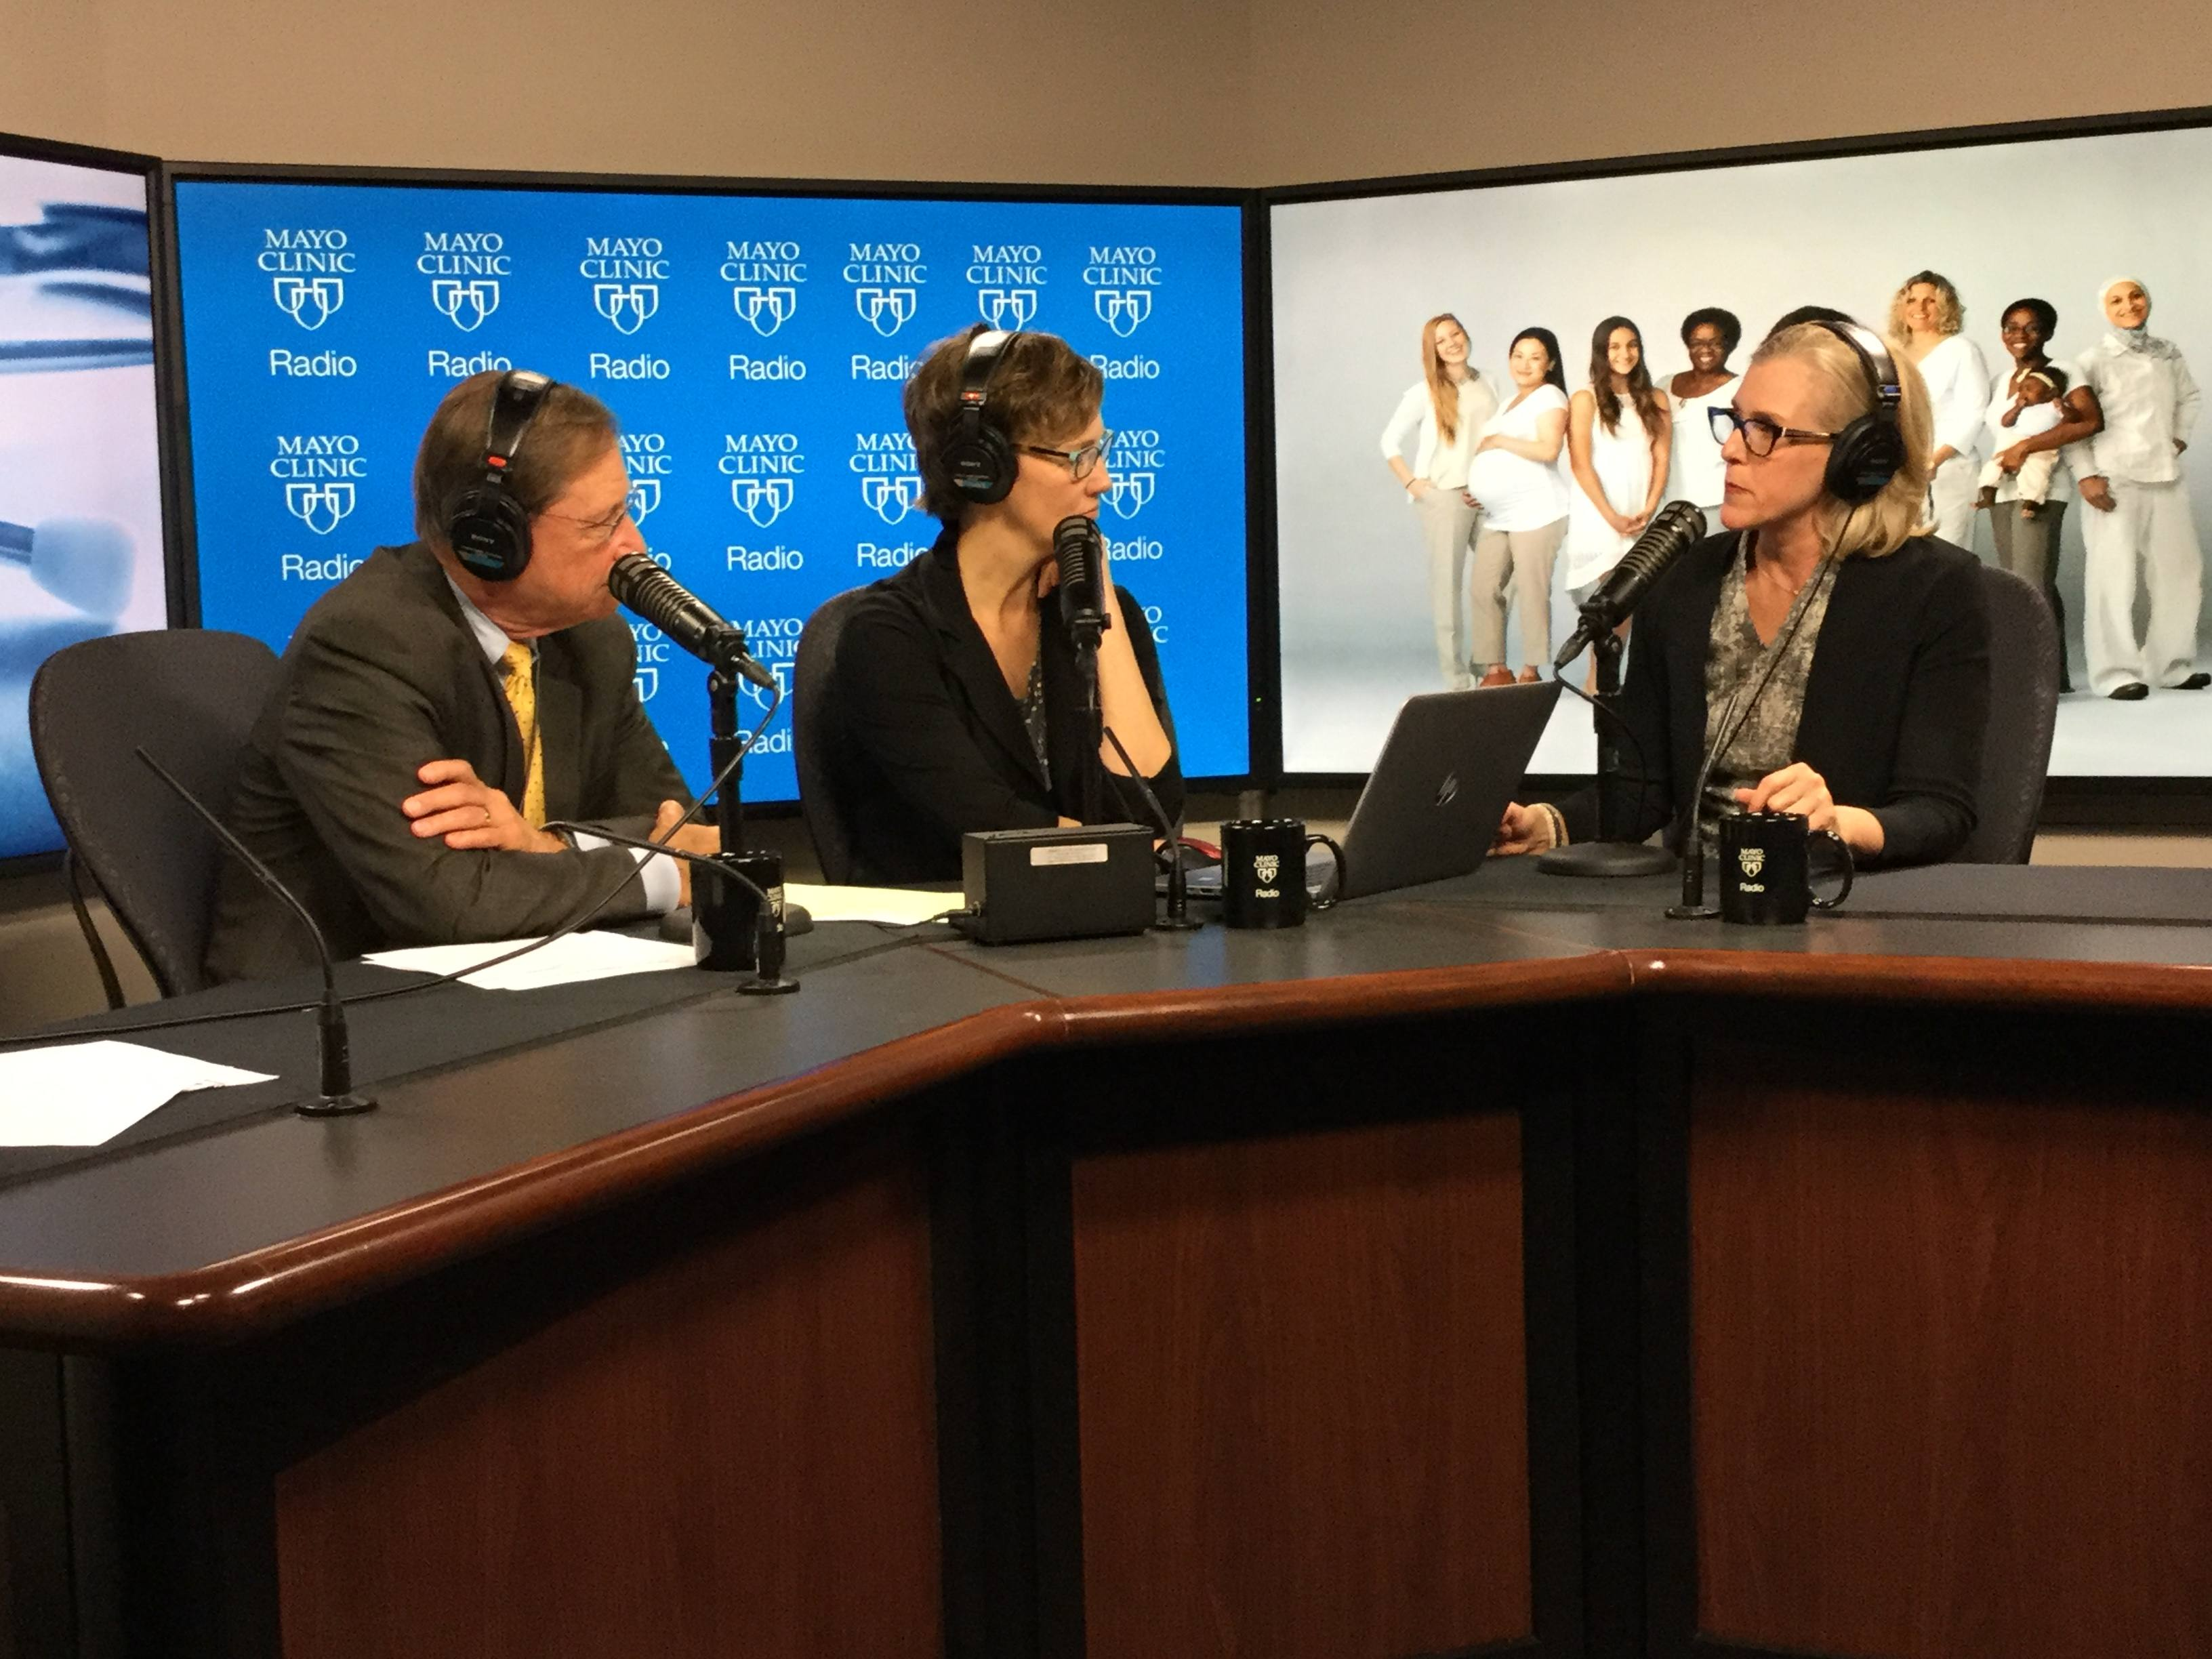 Dr. Stephanie Faubion being interviewed on Mayo Clinic Radio